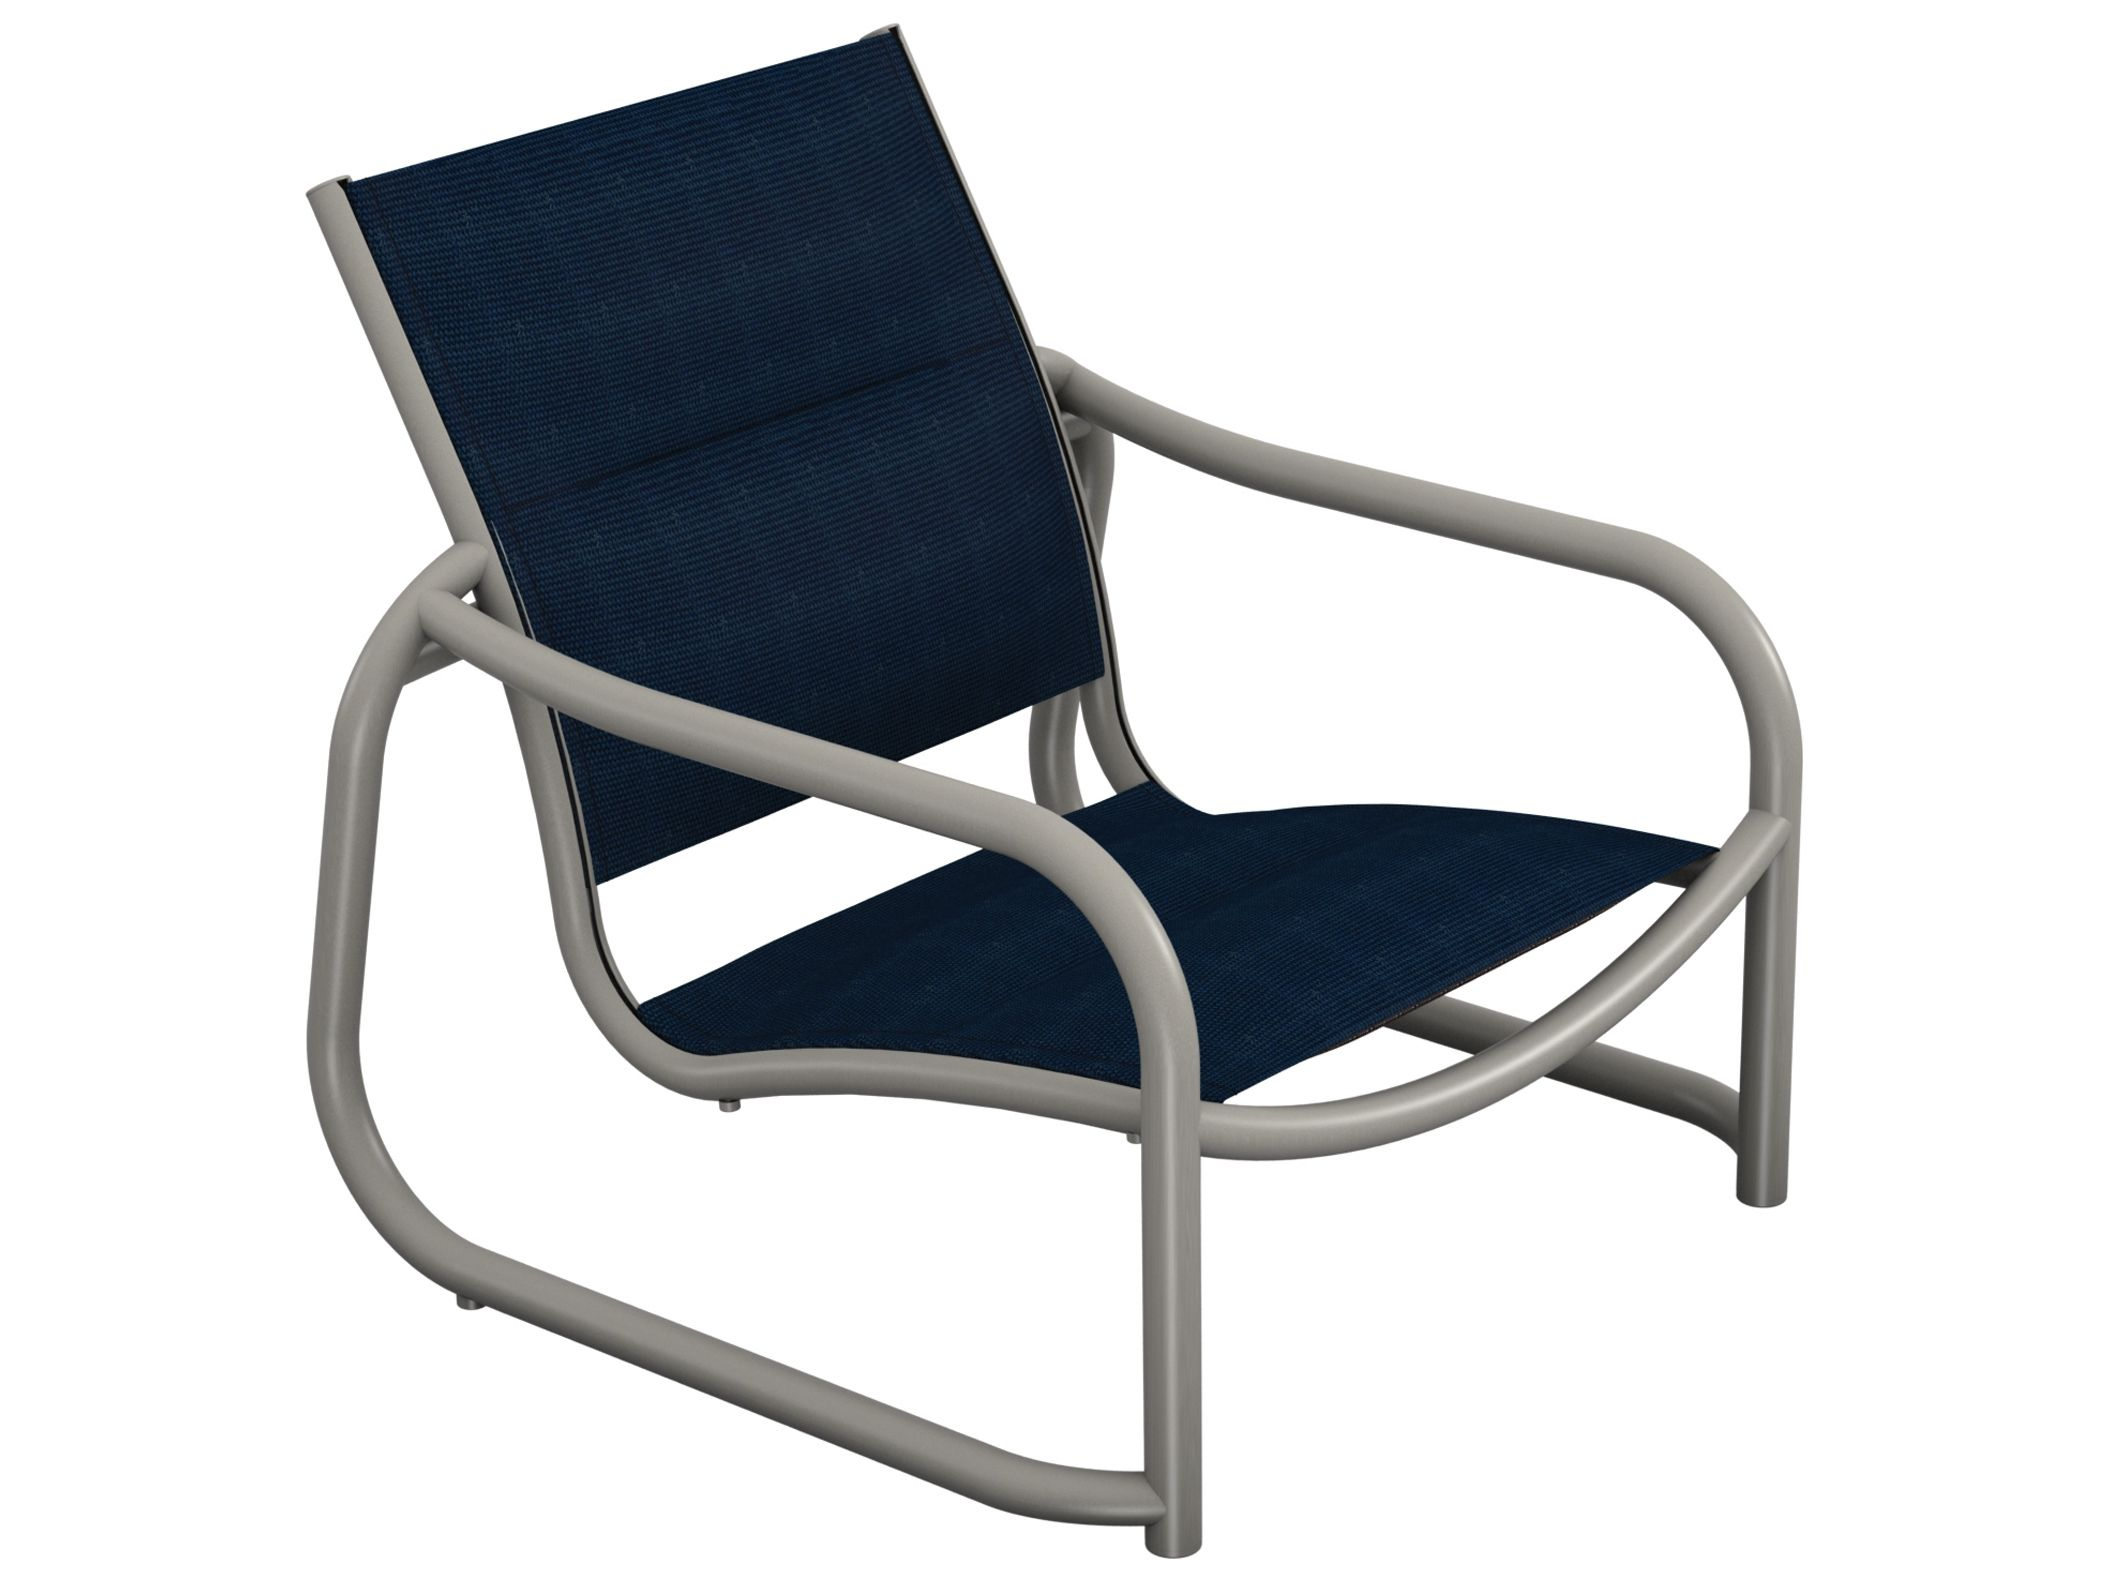 tropitone lounge chairs ikea basket chair covers http productcreationlabs com